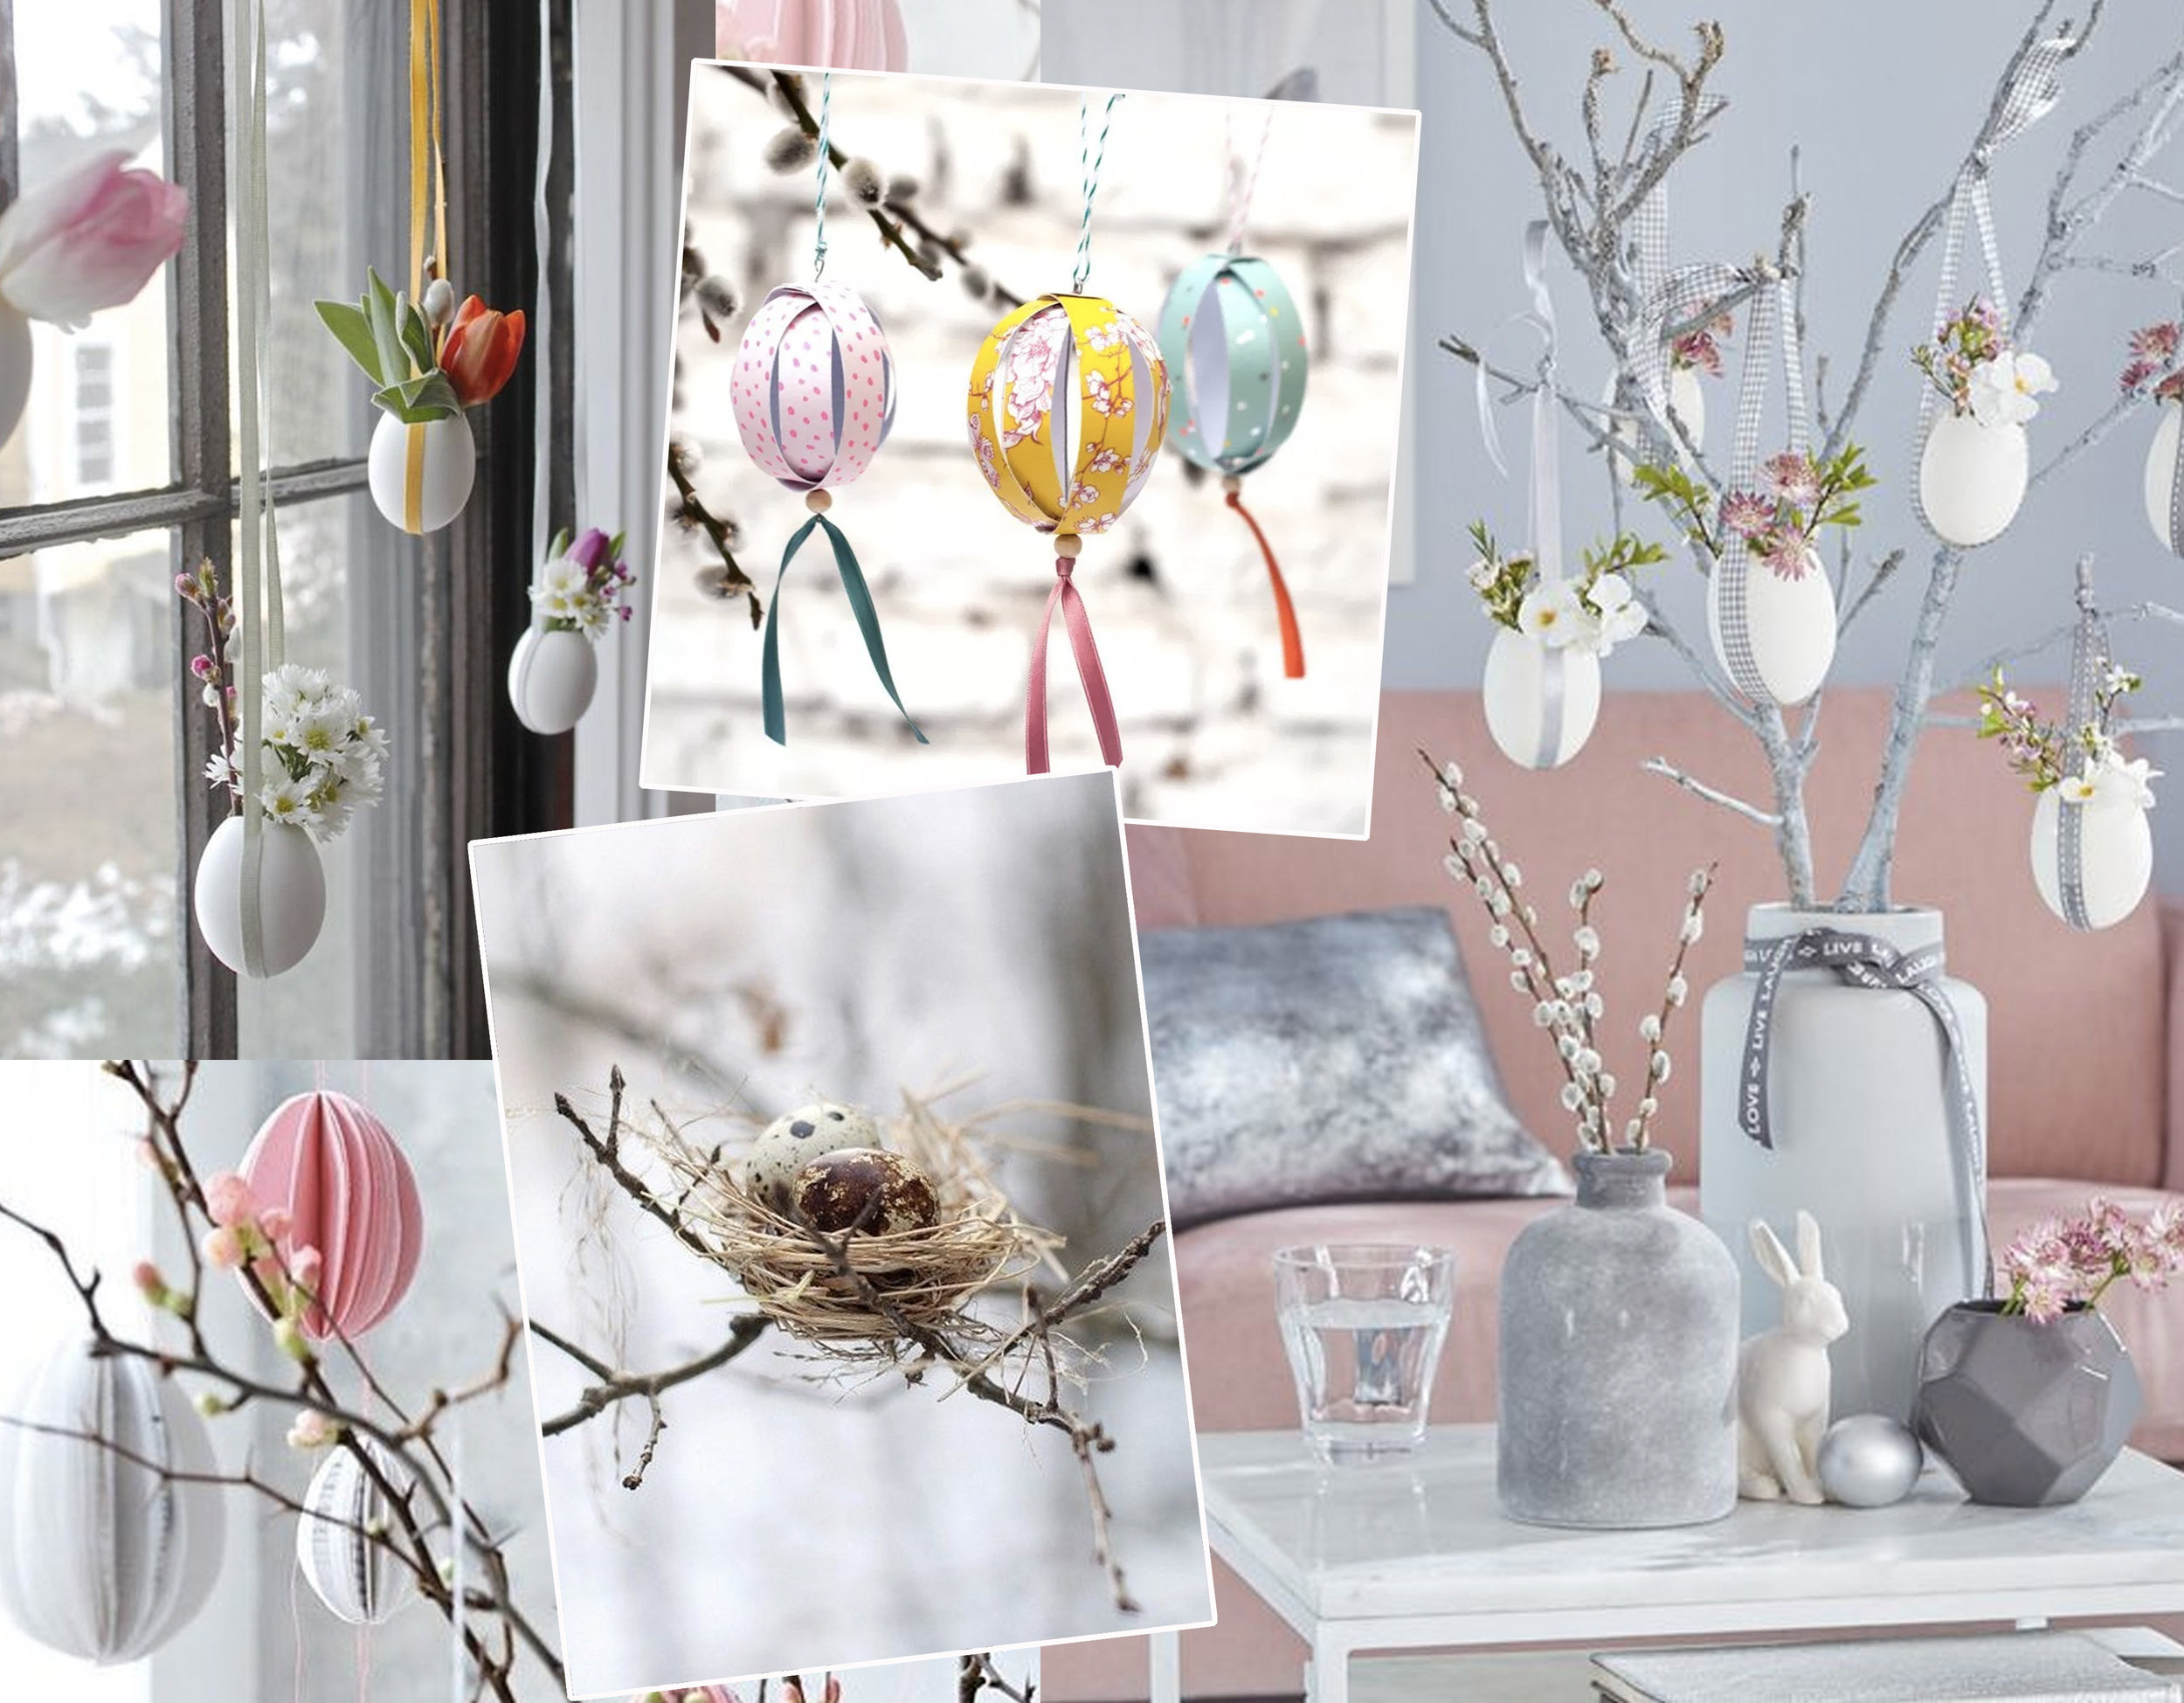 paper Easter eggs via  Glitter and Caffeine  - hanging Easter flowers via  Gardenista  - nest with eggs via  Indulgy  - paper eggs via  La Casa de Freja  Easter decorated interior via  Worthminer